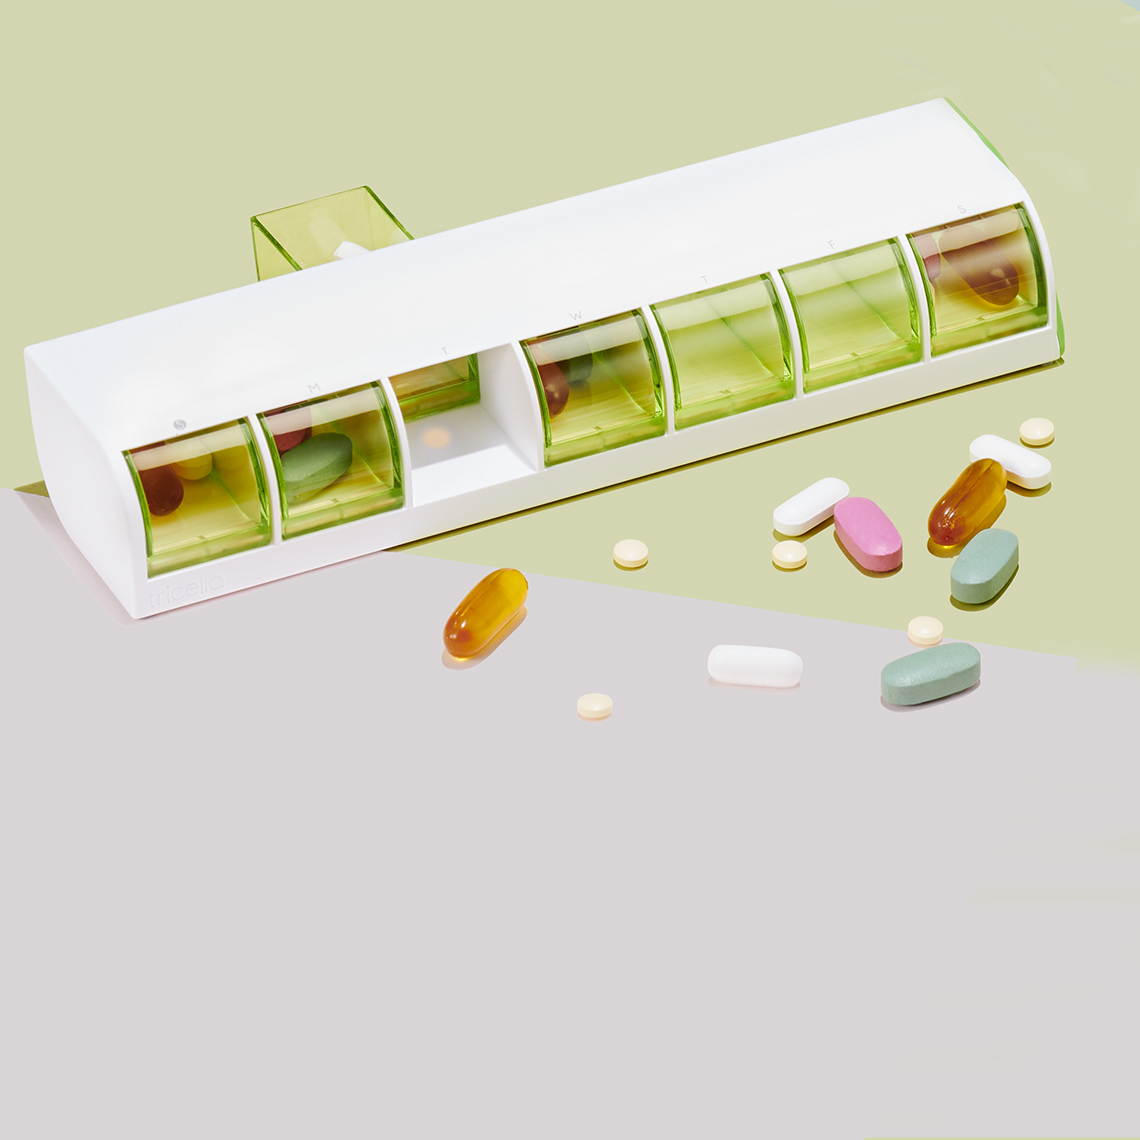 A pill container with various pills